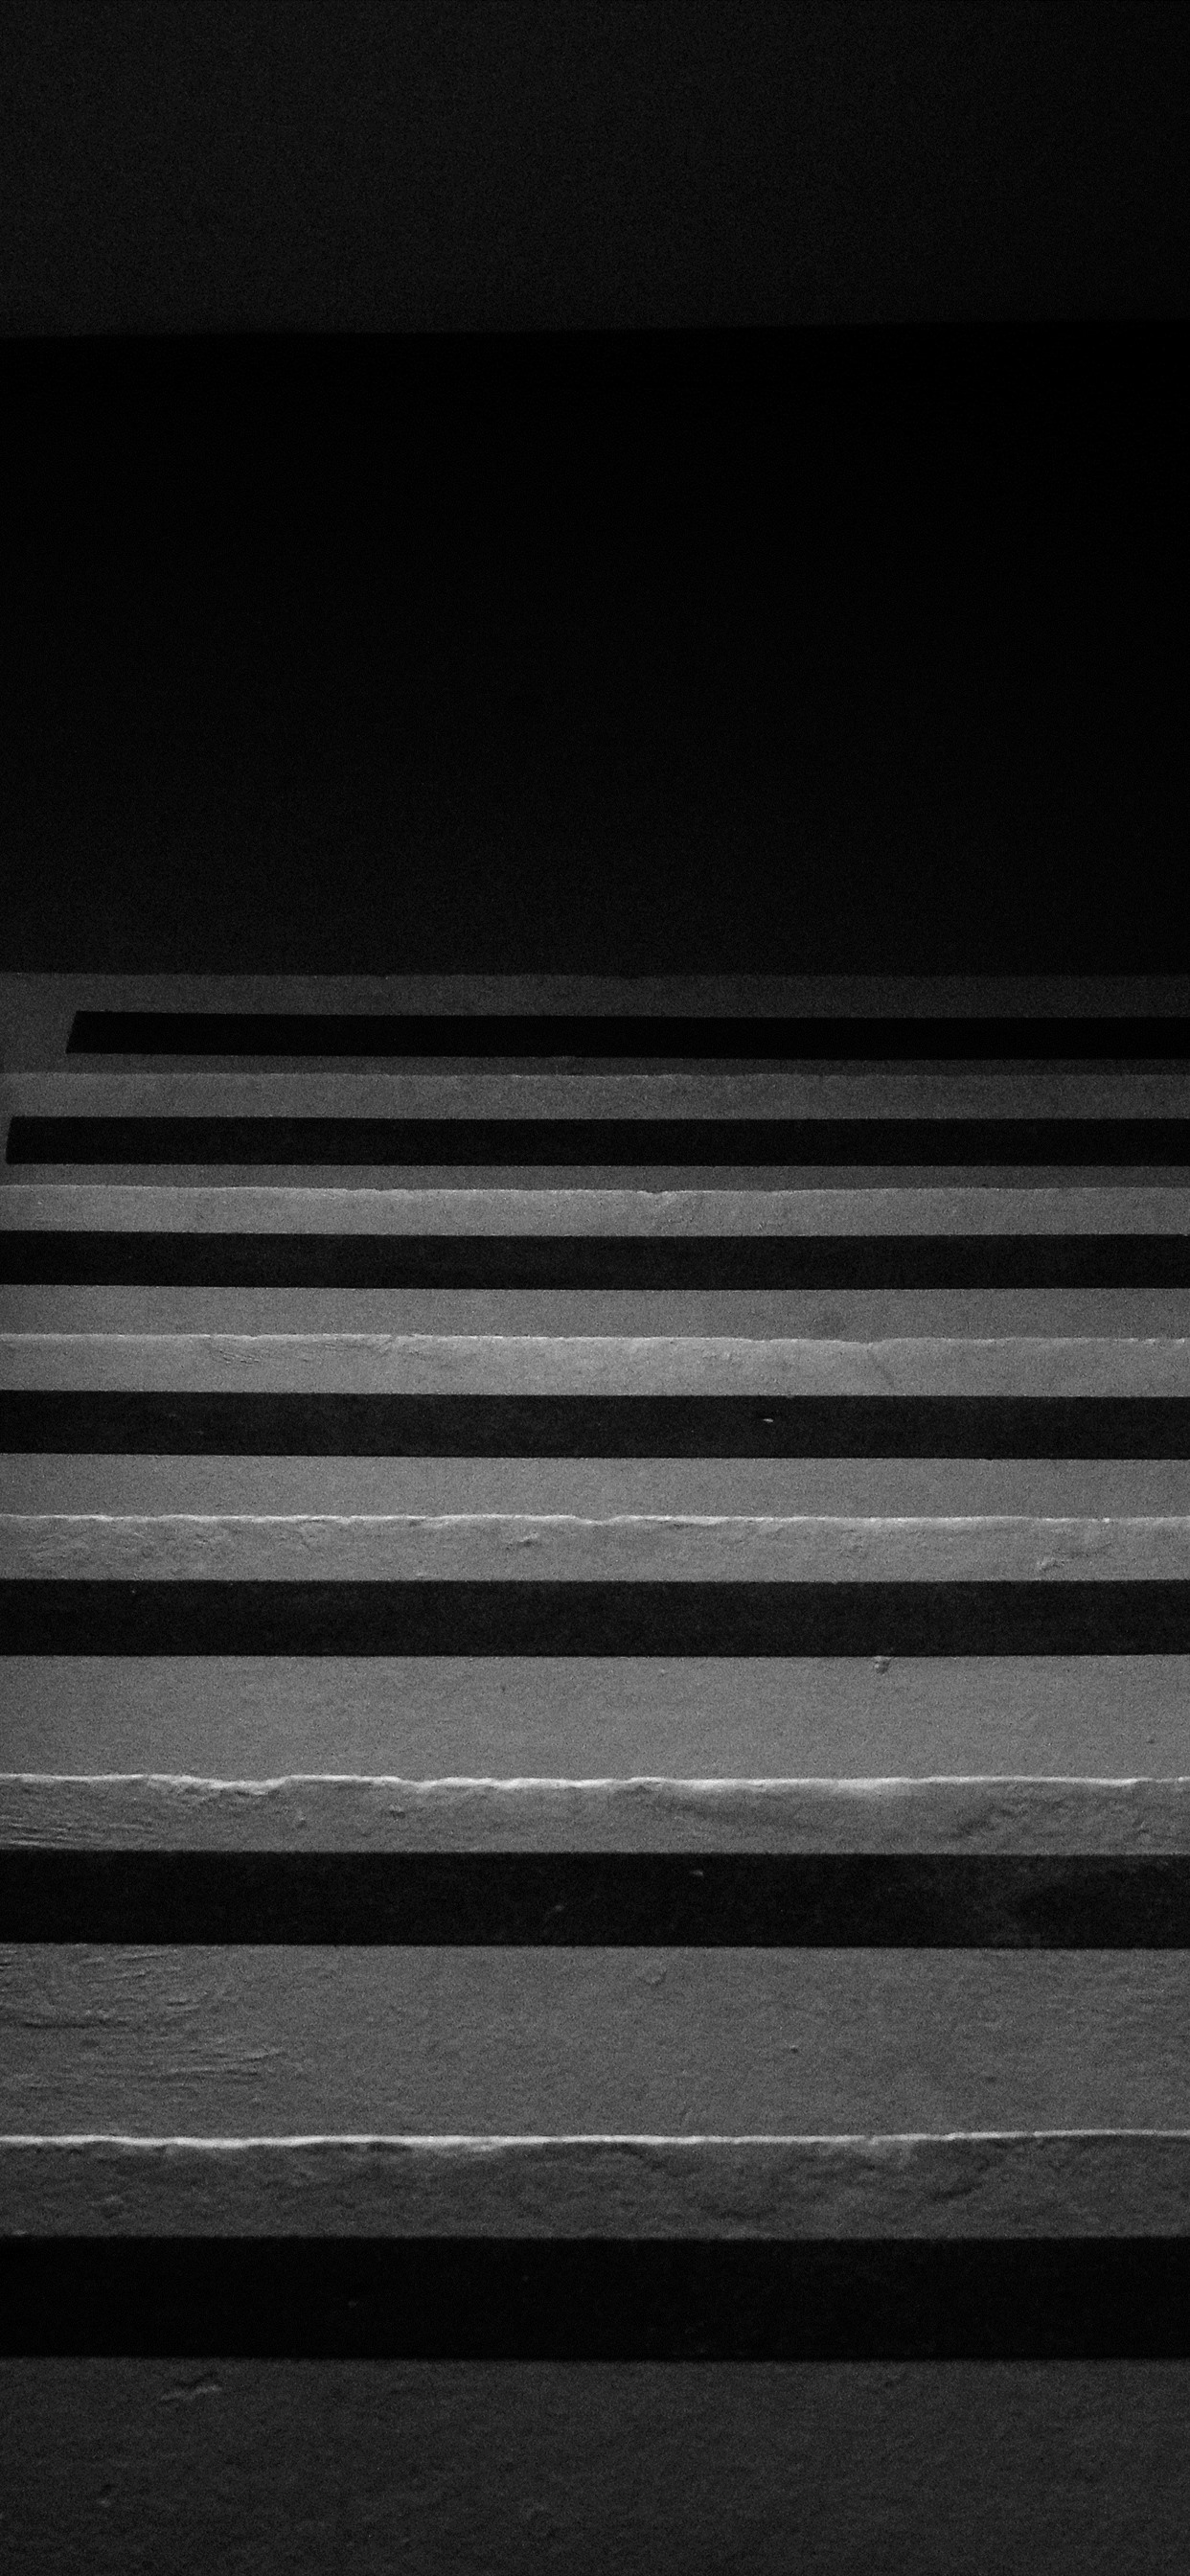 Ladder Black And White Picture 1242x2688 Iphone Xs Max